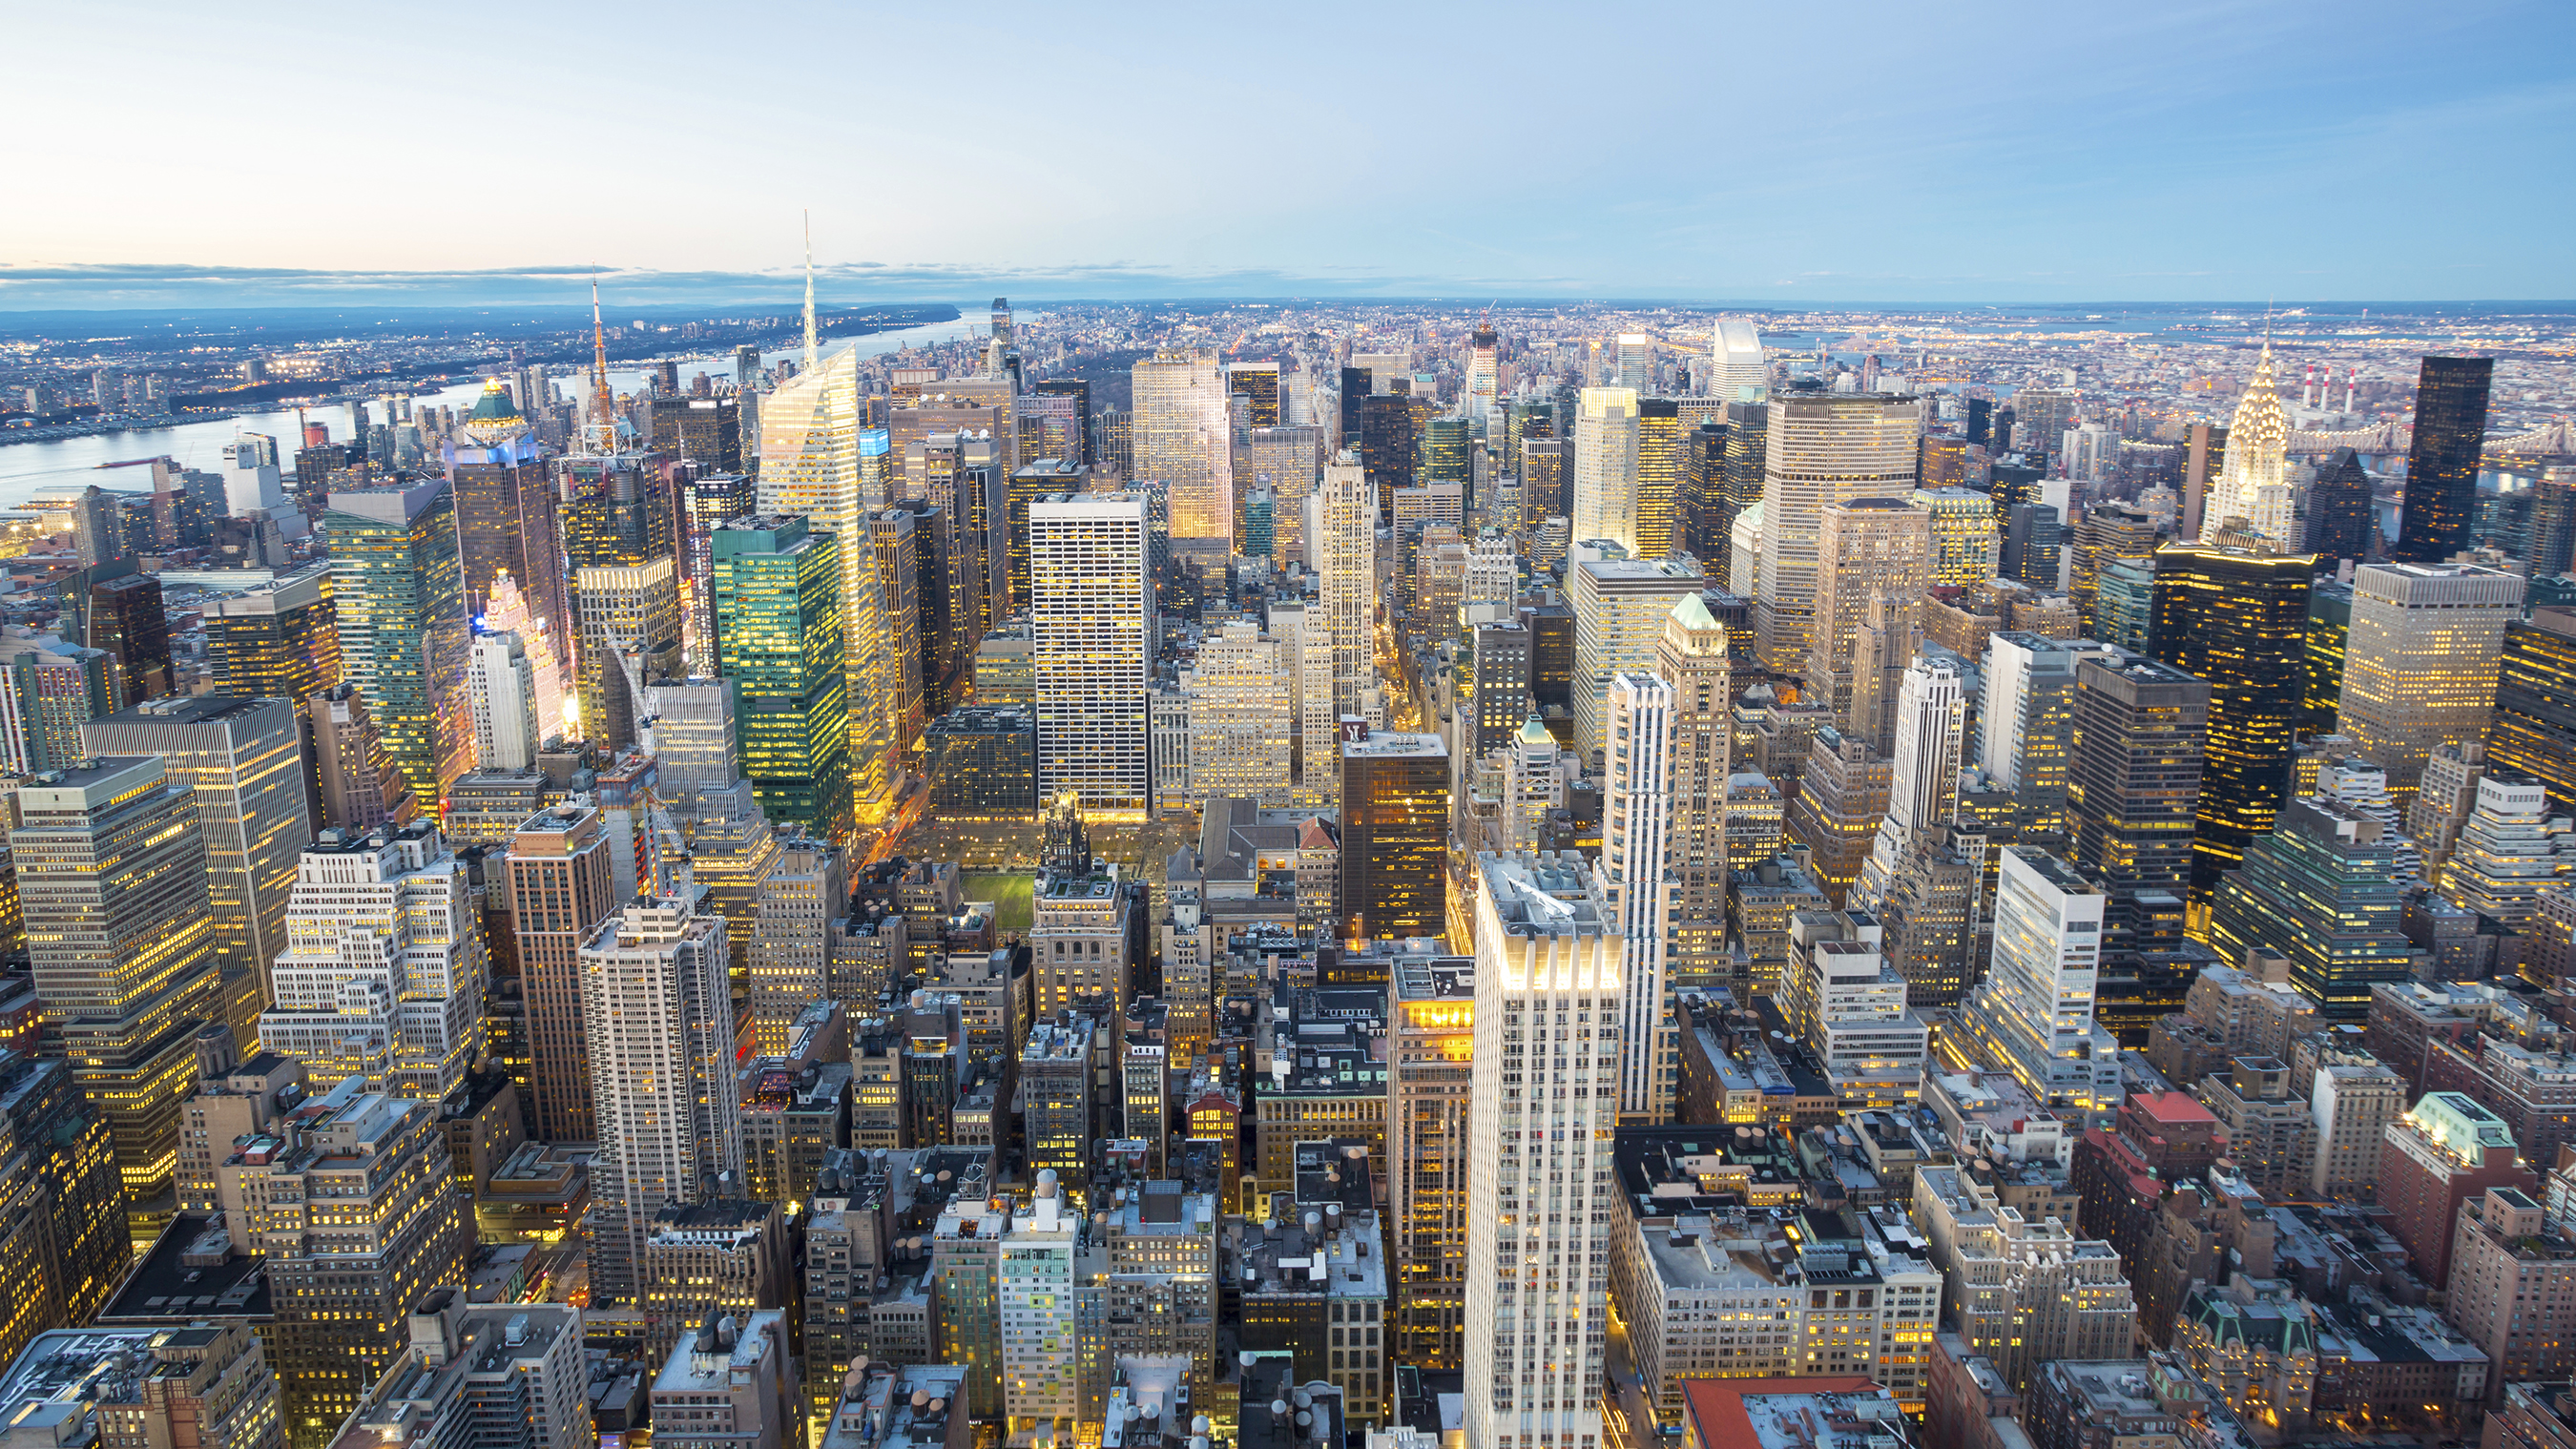 Aerial Image of a City